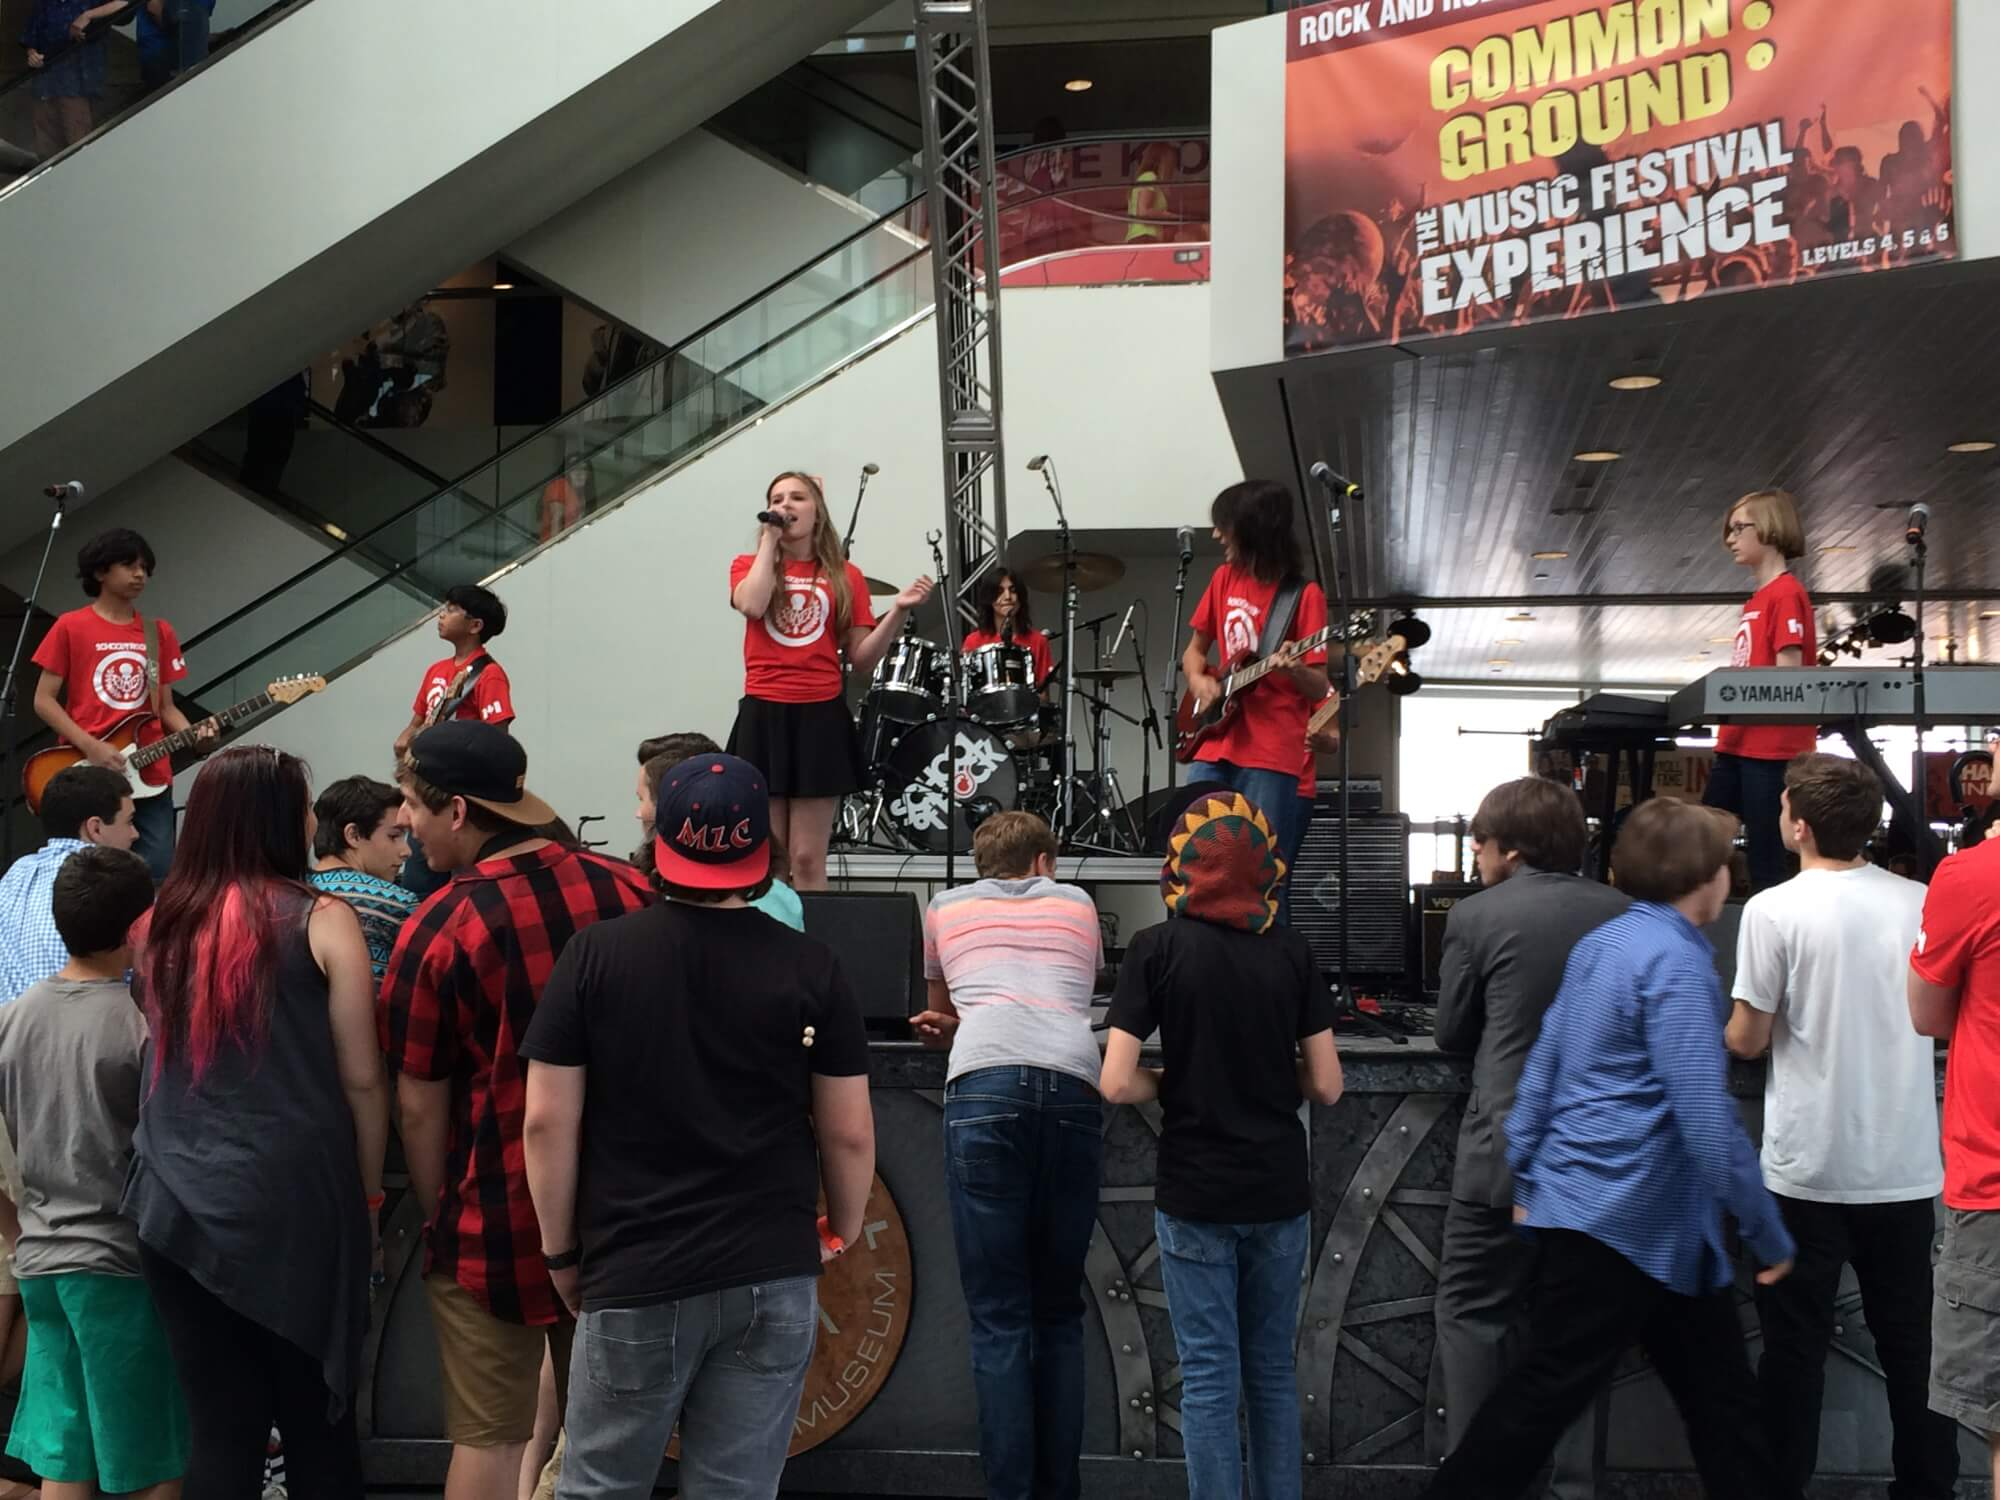 School of Rock Markham House Band playing at the Rock and Roll Hall of Fame in Cleveland!